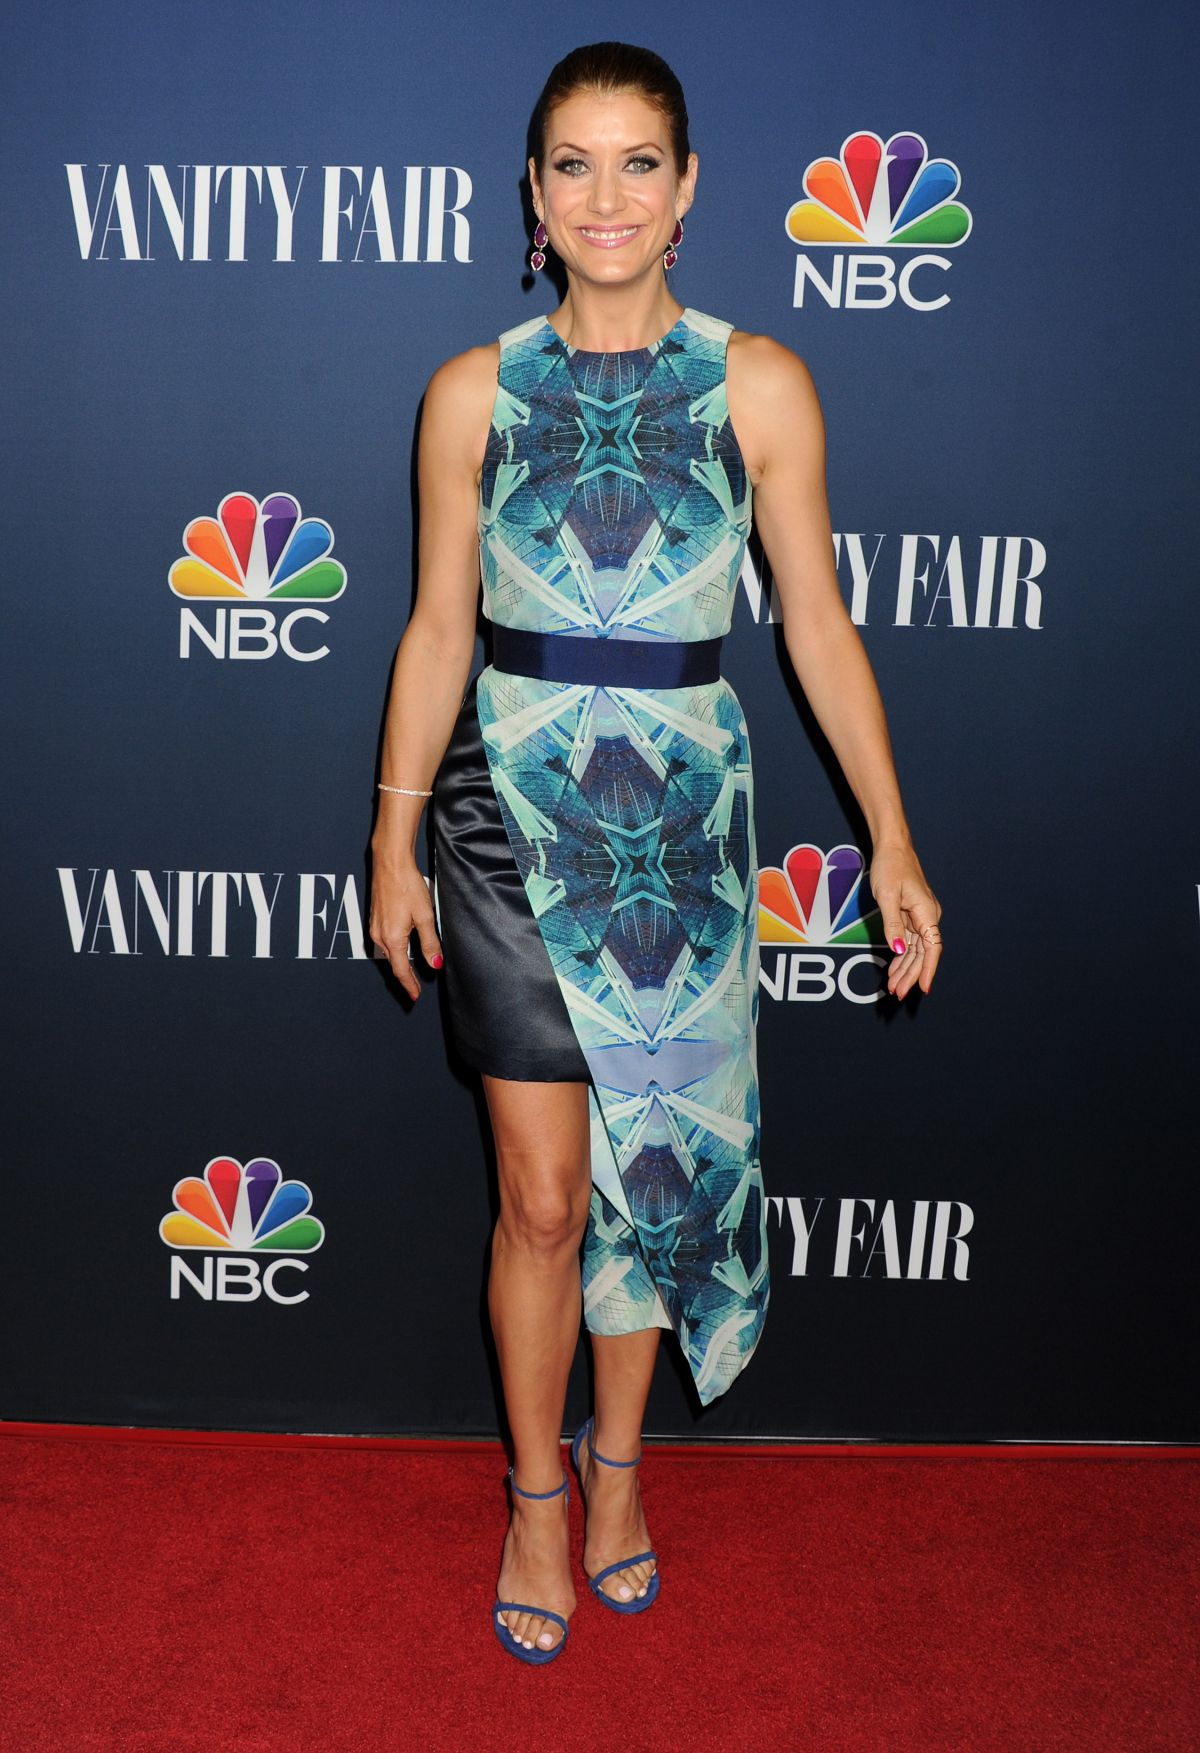 KATE WALSH at NBC and Vanity Fair 2014/2015 TV Season Party in West ...